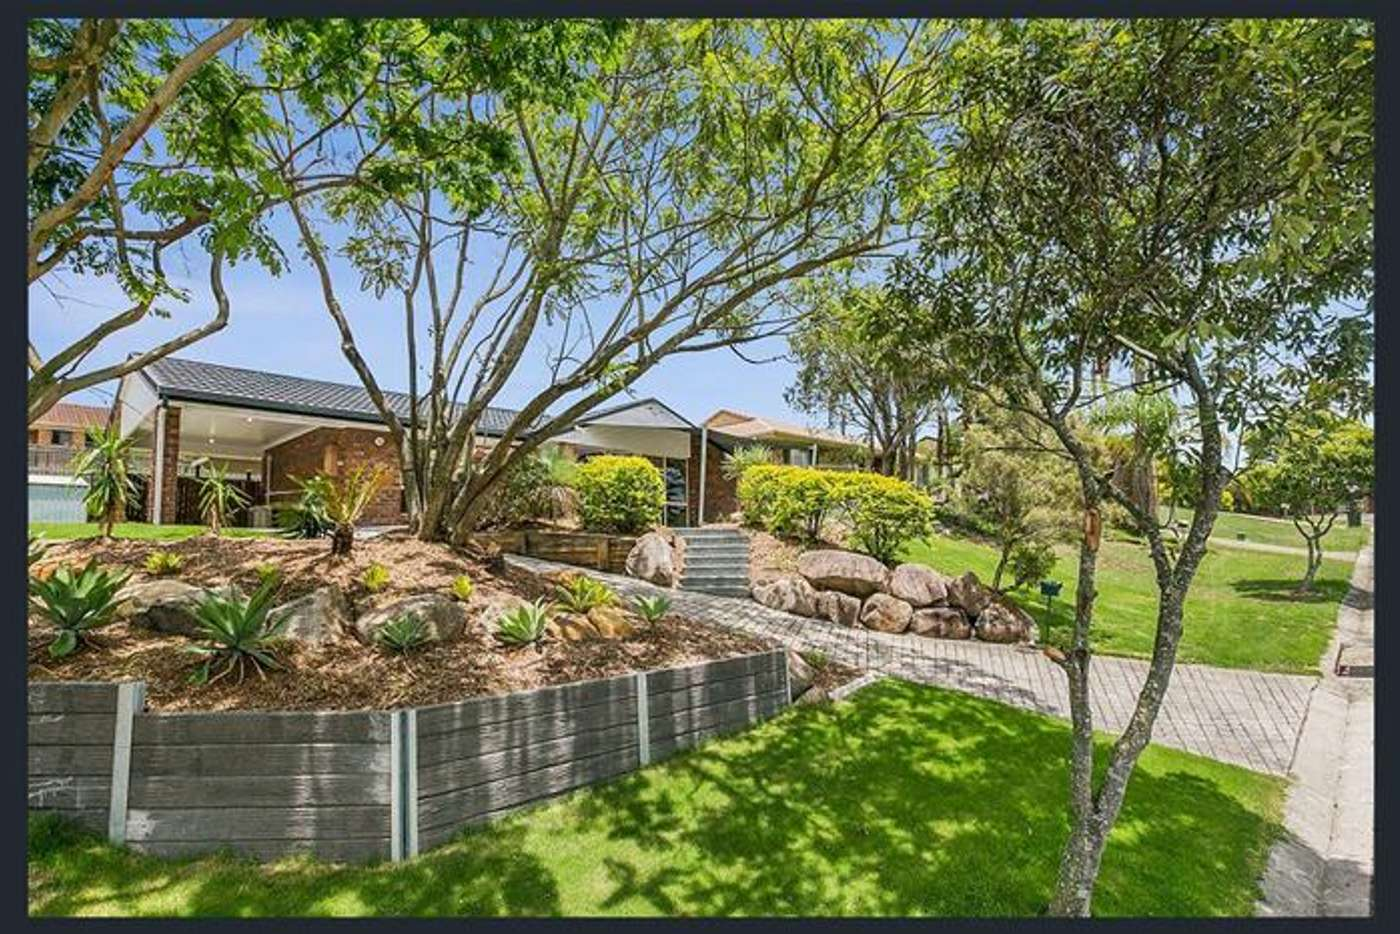 Main view of Homely house listing, 5 Glenalwyn Street, Holland Park QLD 4121